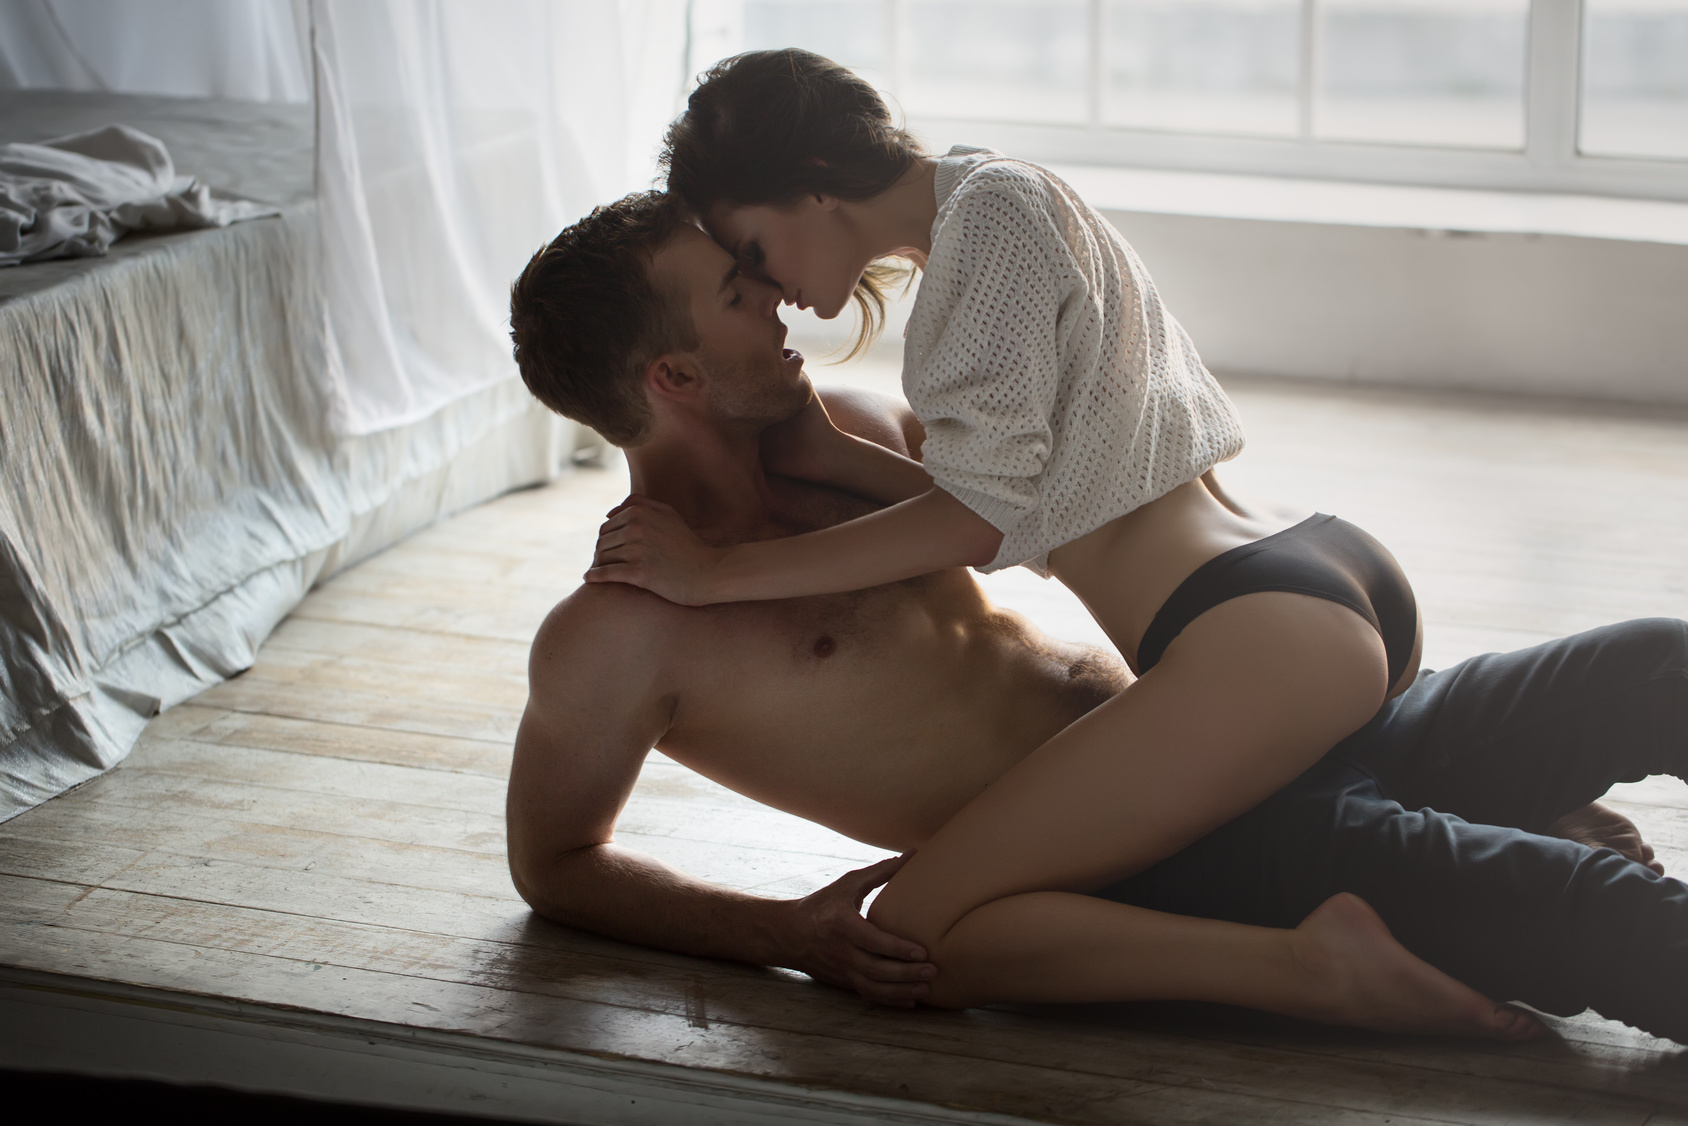 Passionate couple kissing, boy and girl sitting on wooden floor near the rumpled bed opposite the window.